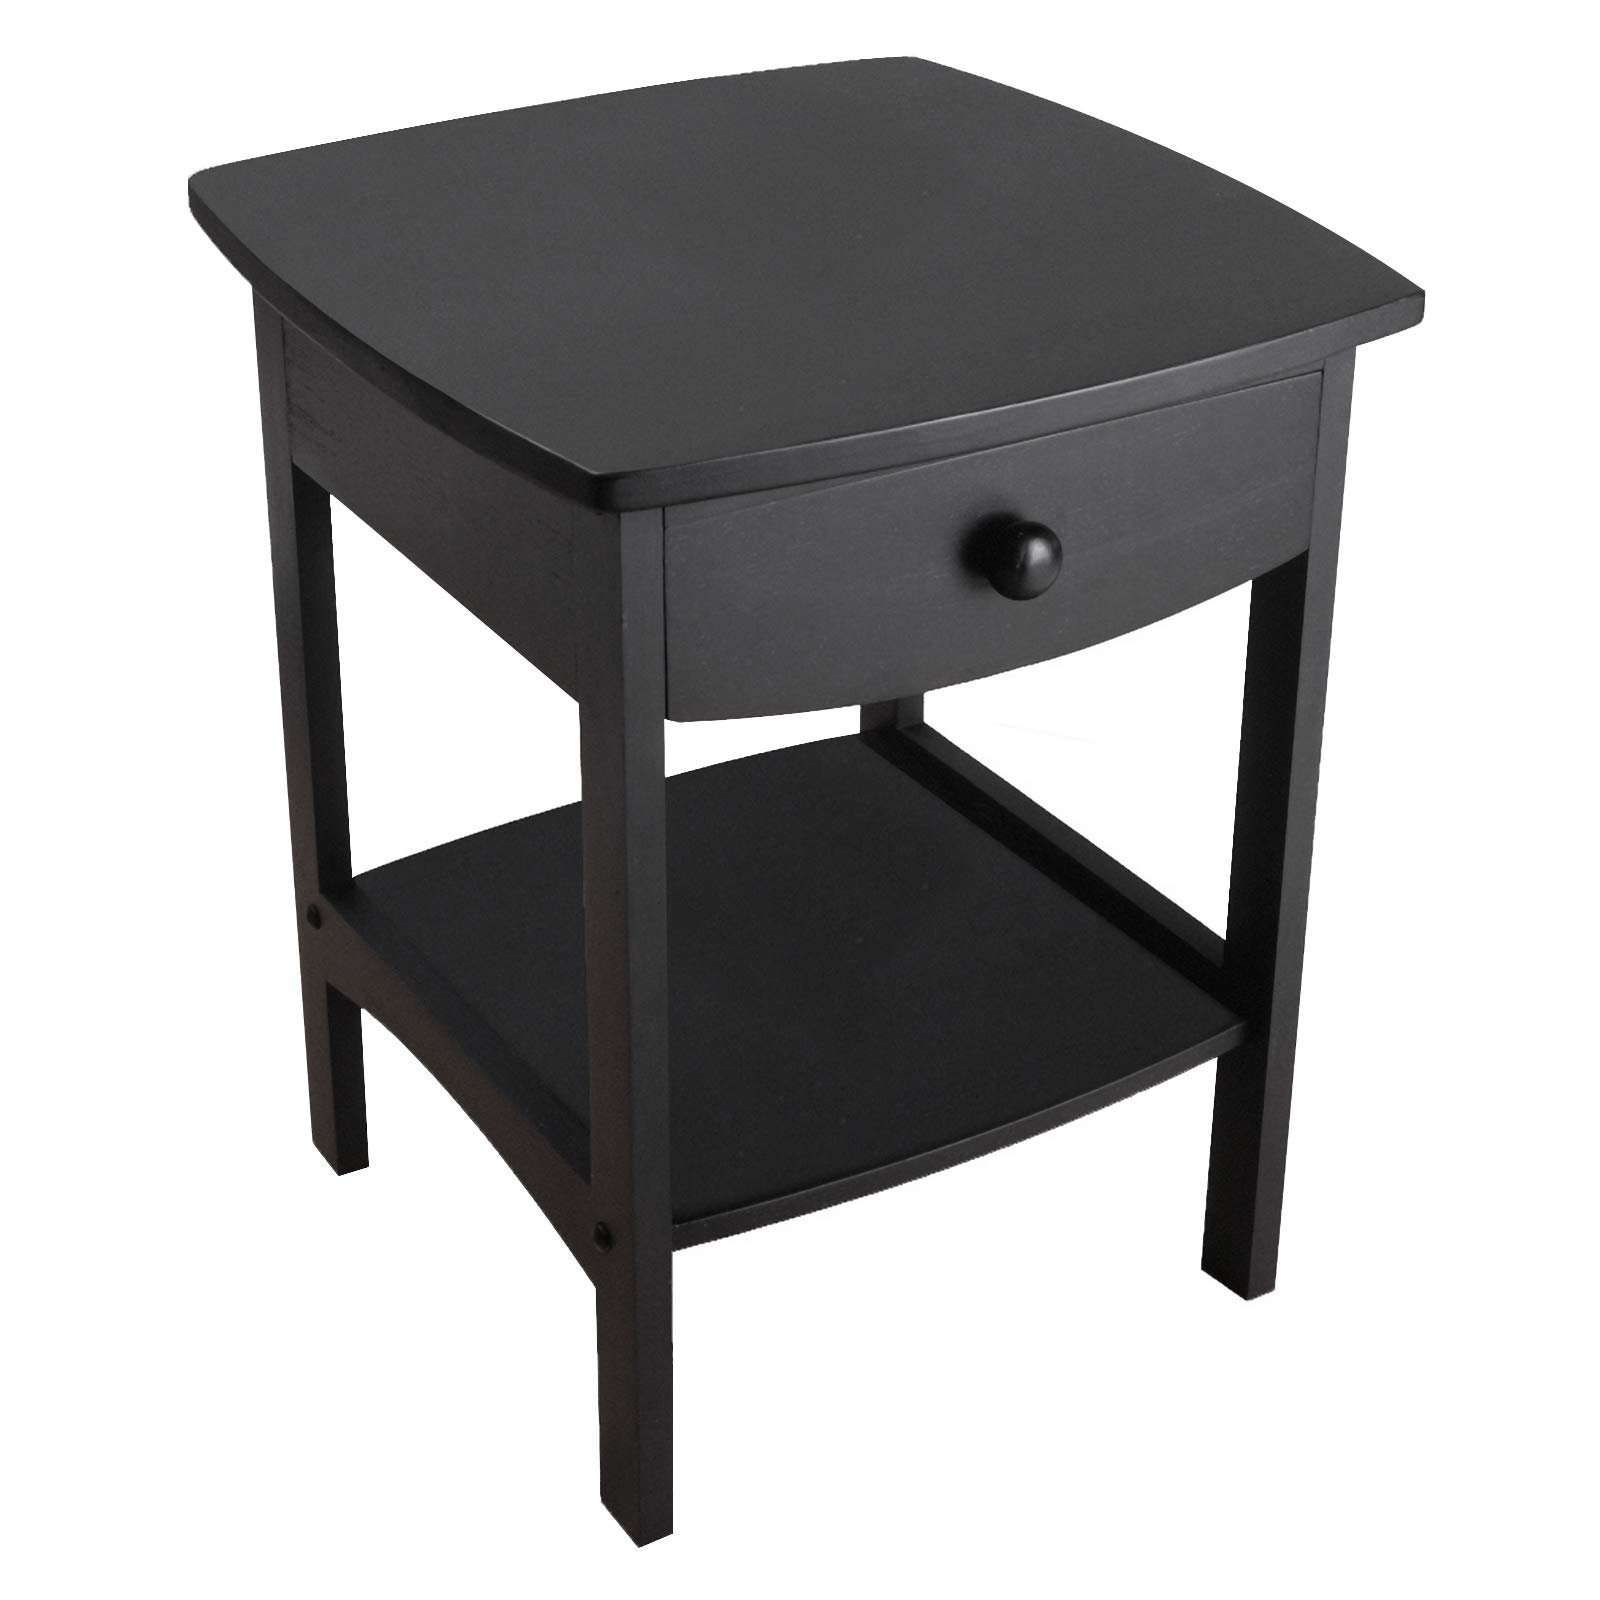 Winsome Wood 20218 Claire Accent Table, Black by Winsome Wood